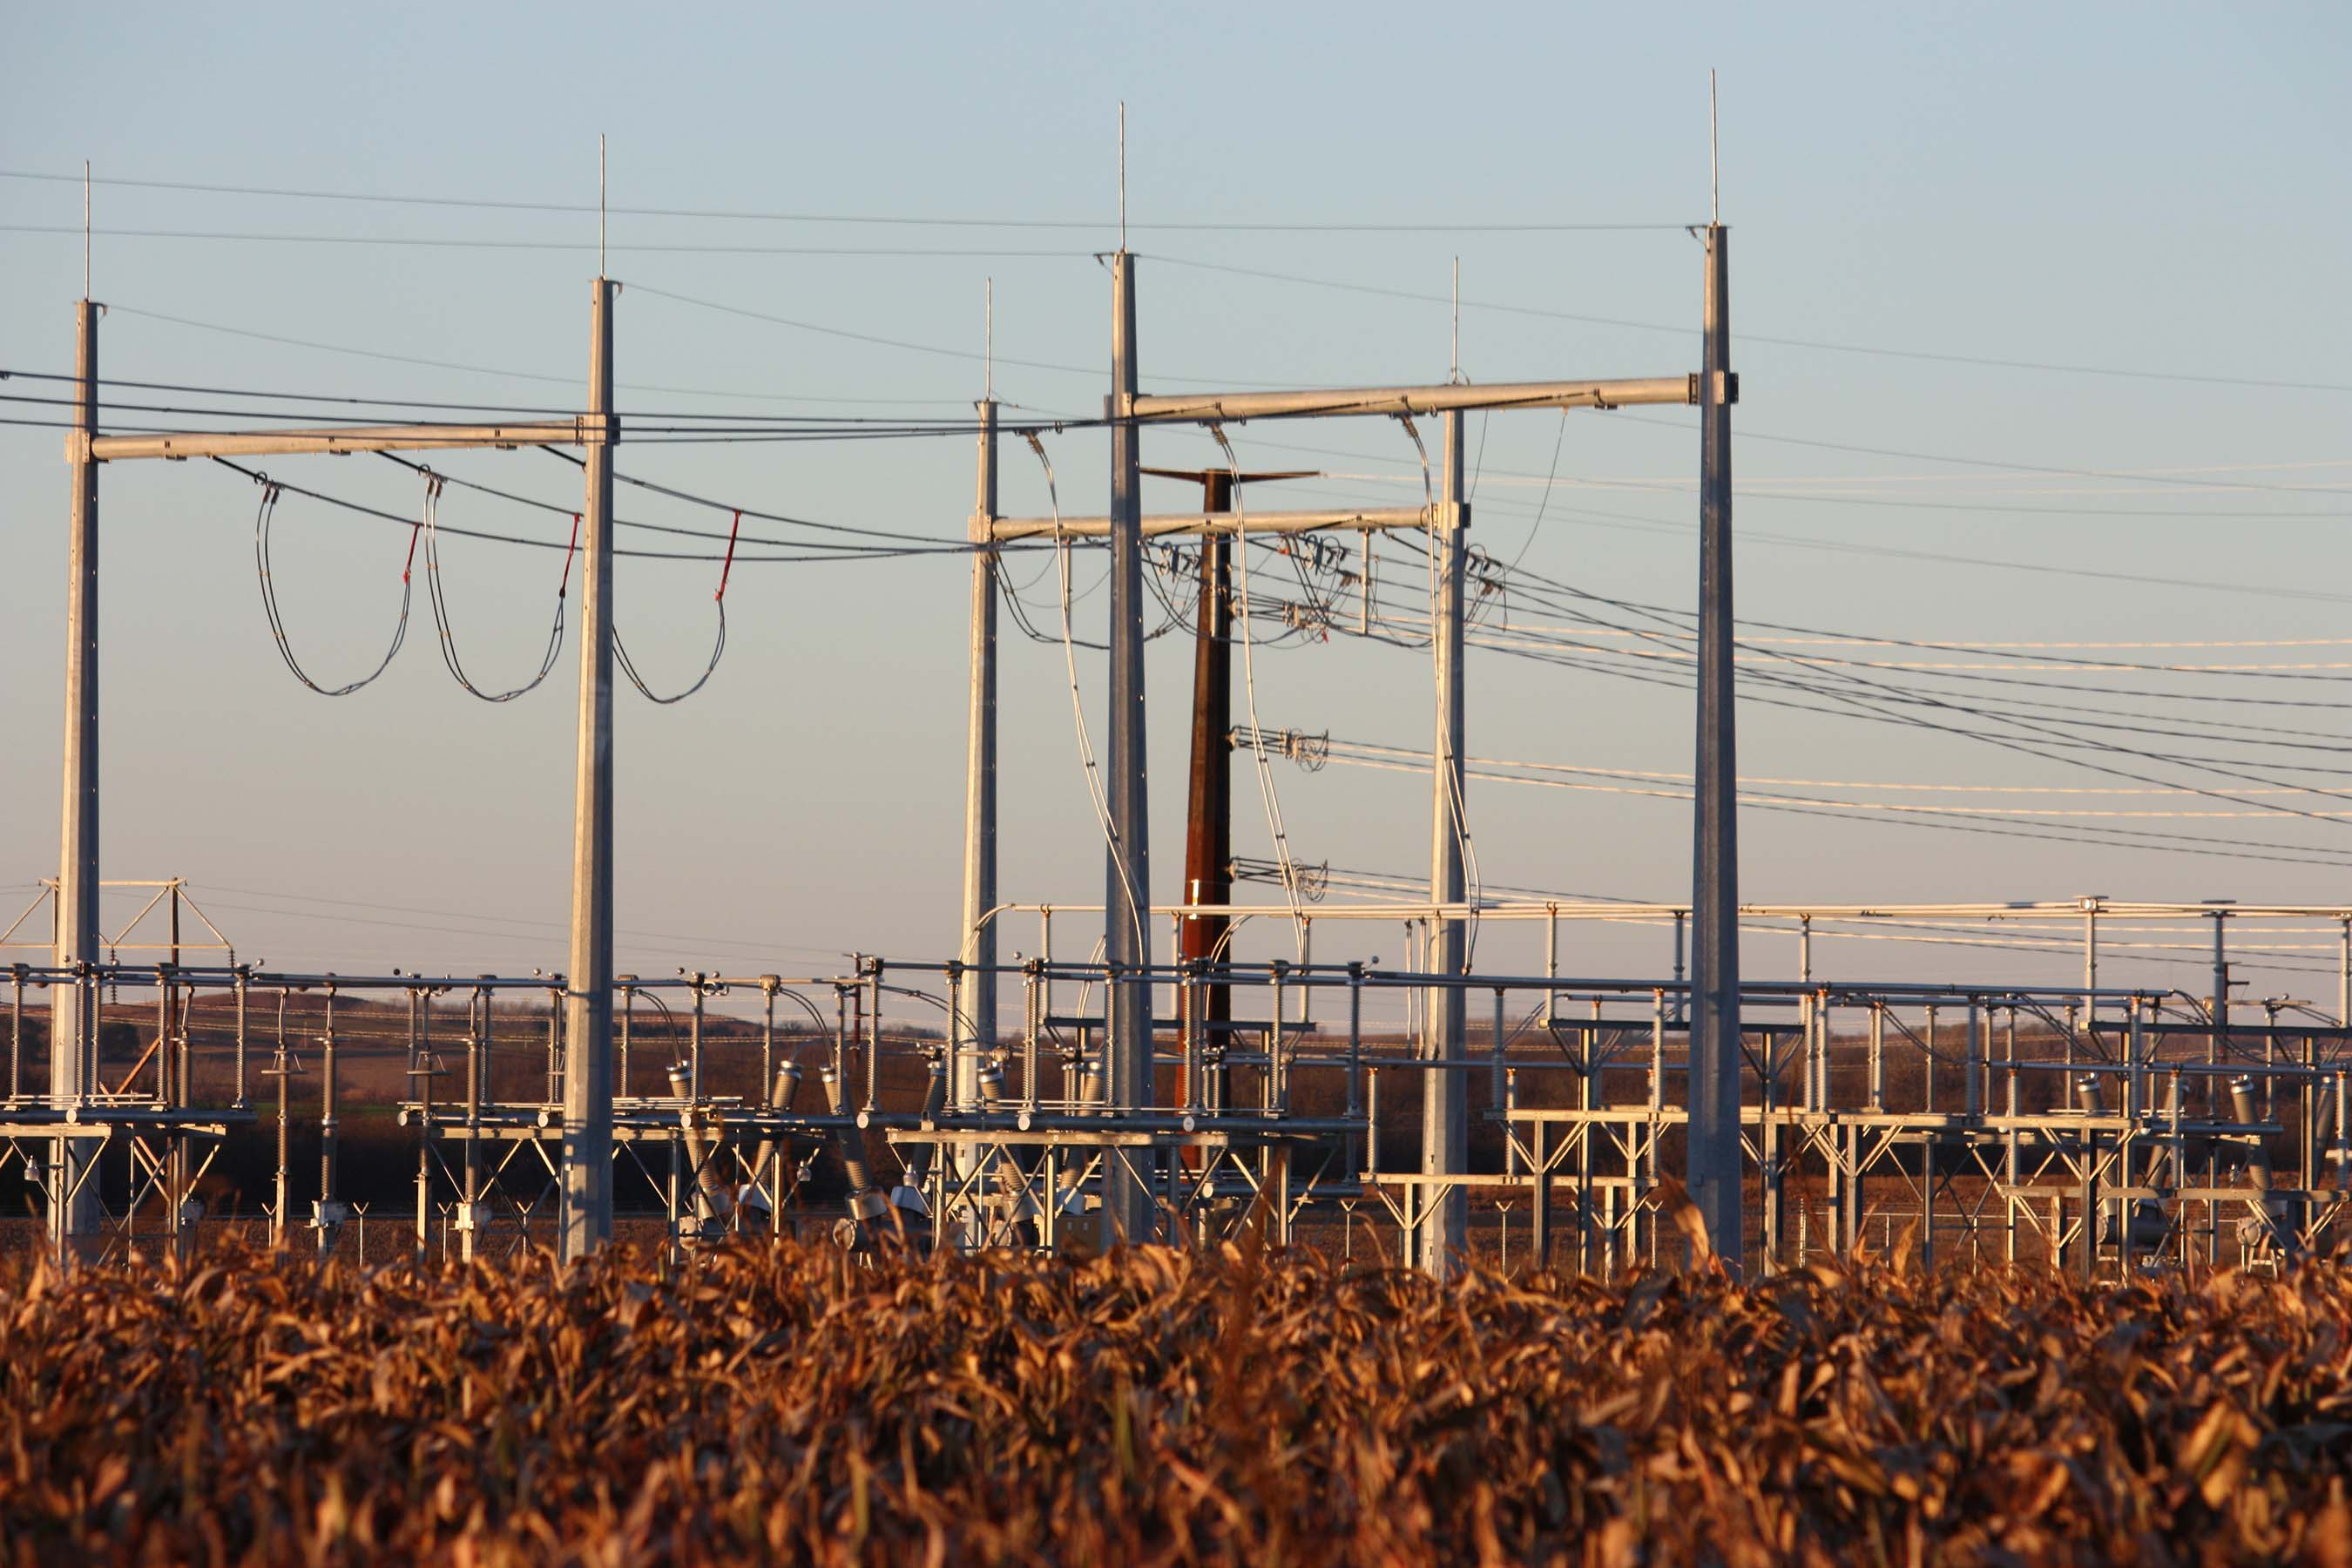 The new Elm Creek substation, southeast of Concordia, Kansas, marks the northern end of the Elm Creek-Summit transmission line.